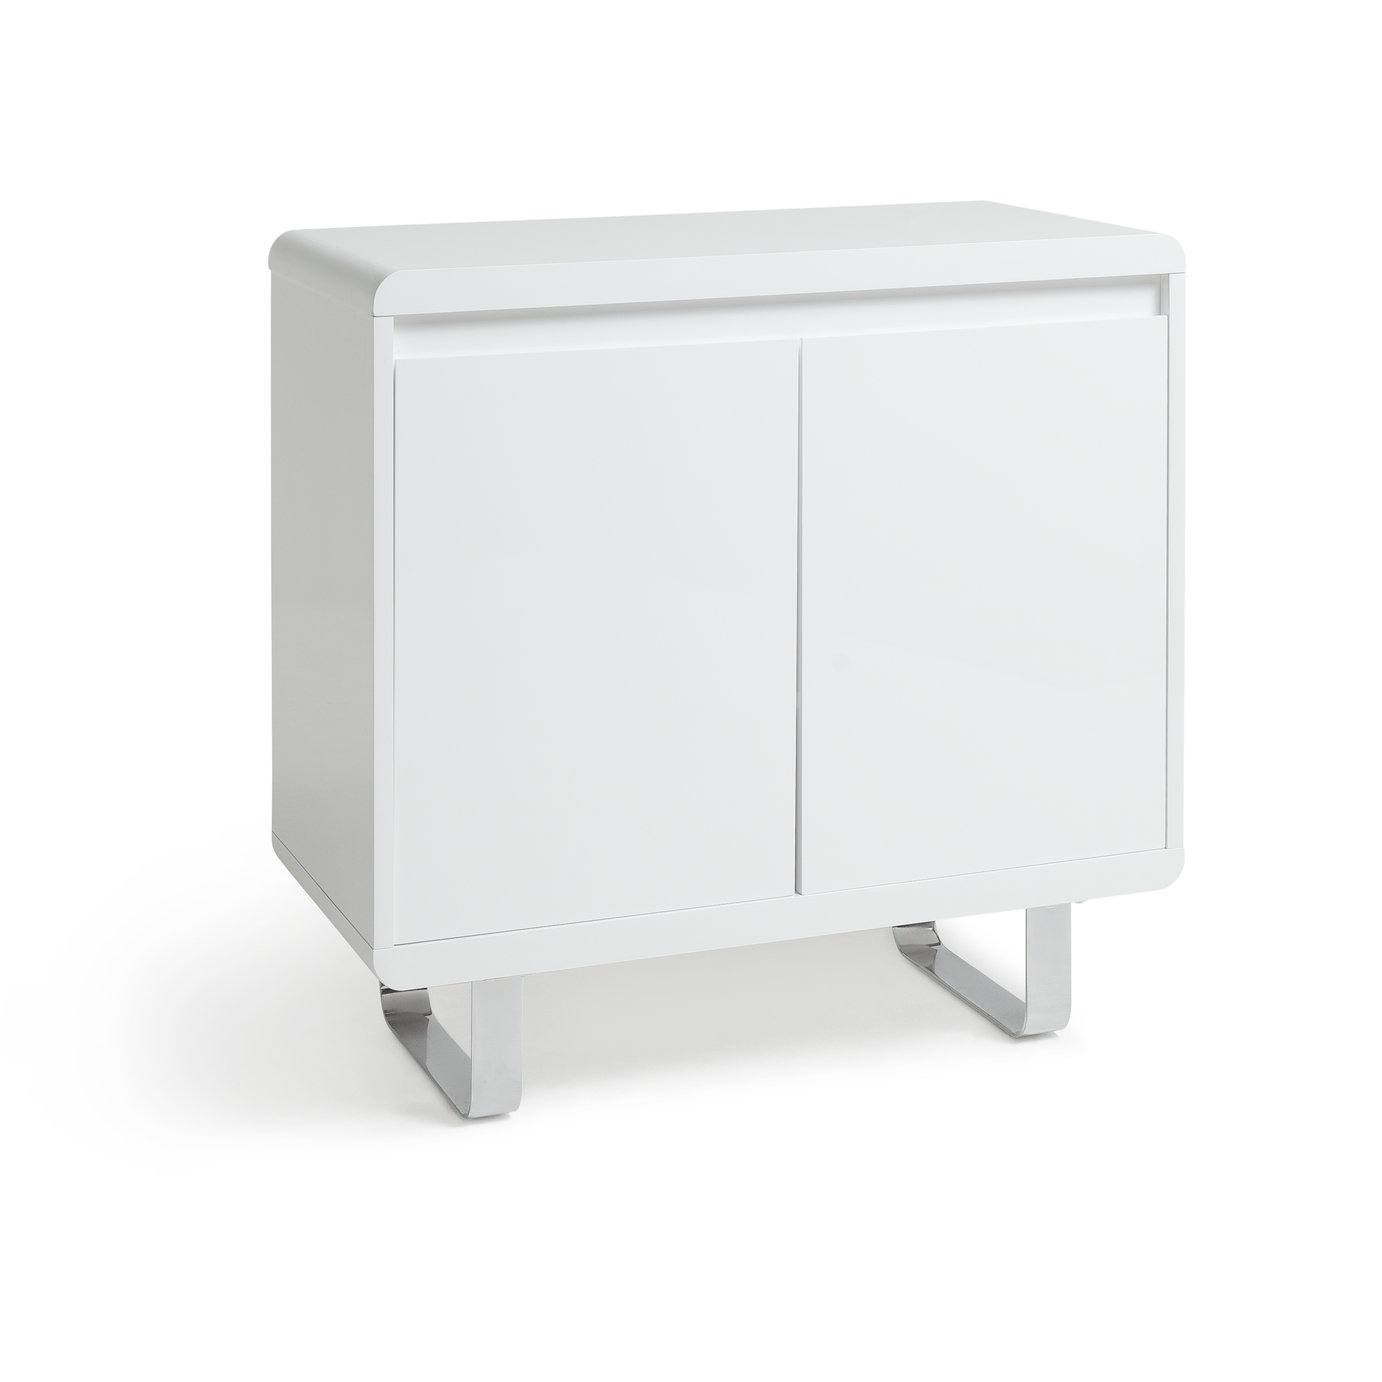 Argos Home Sleigh 2 Door Sideboard - White Gloss